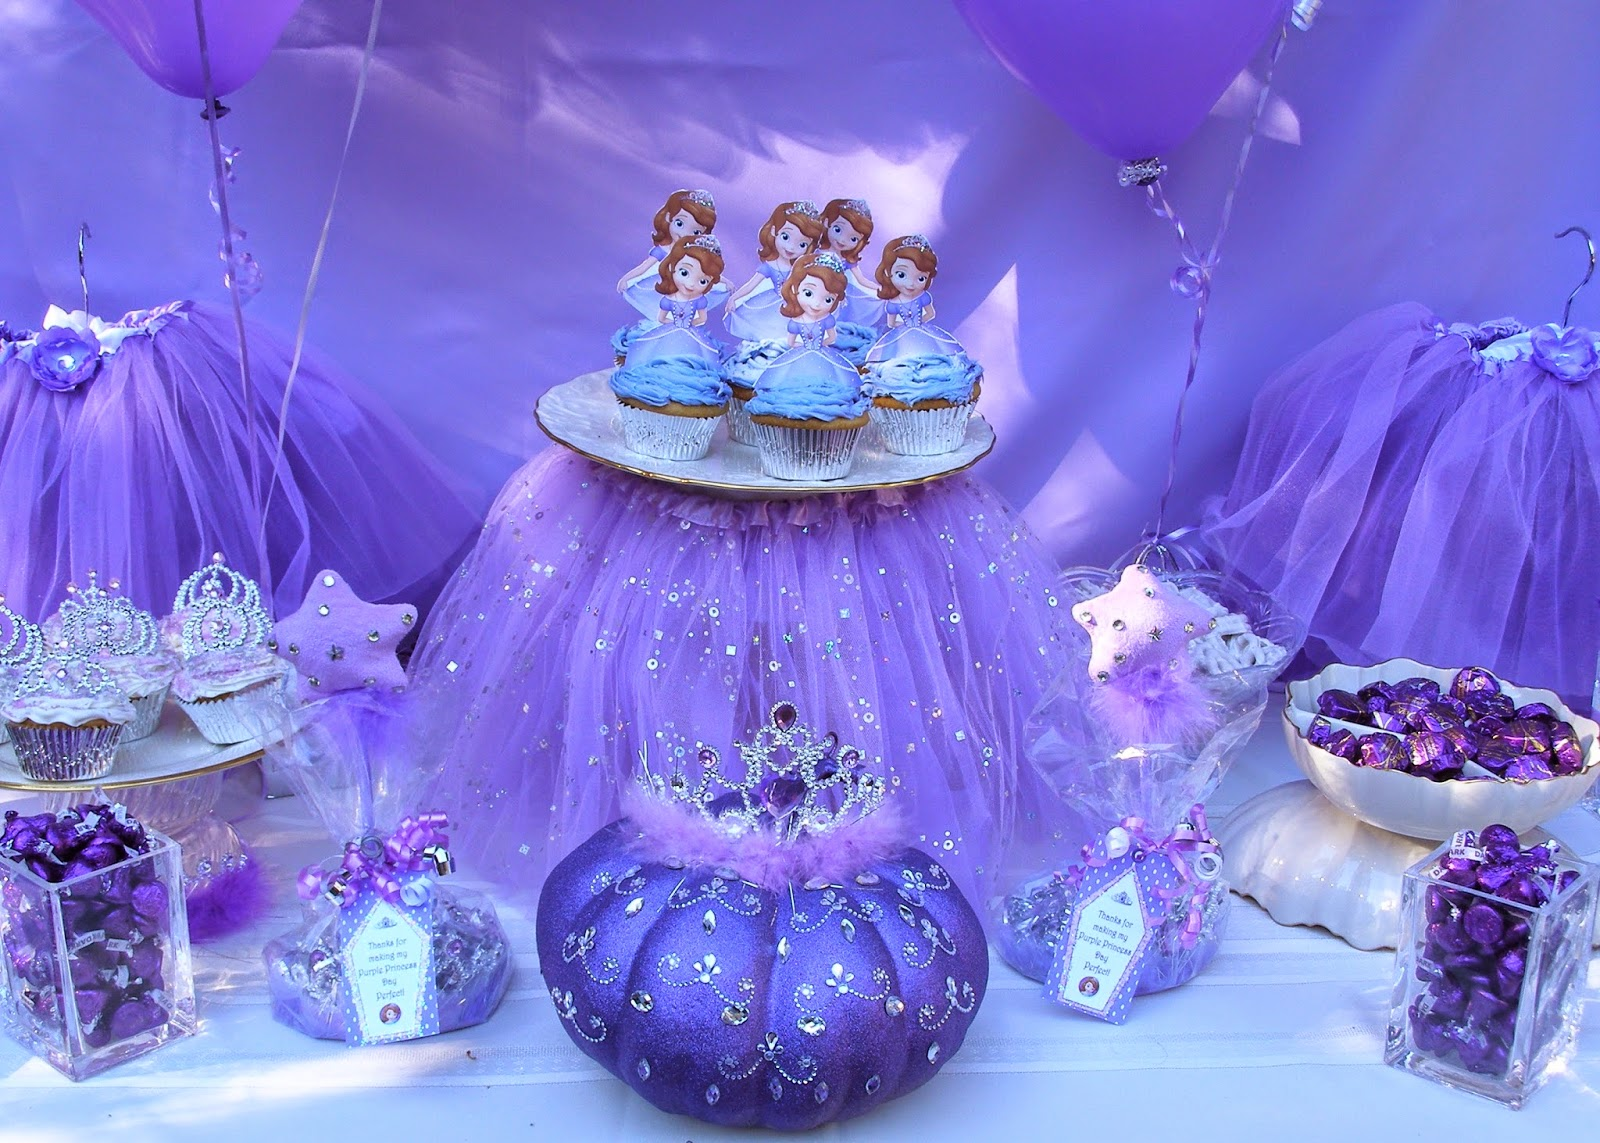 The Princess Birthday Blog Introducing Our New Little